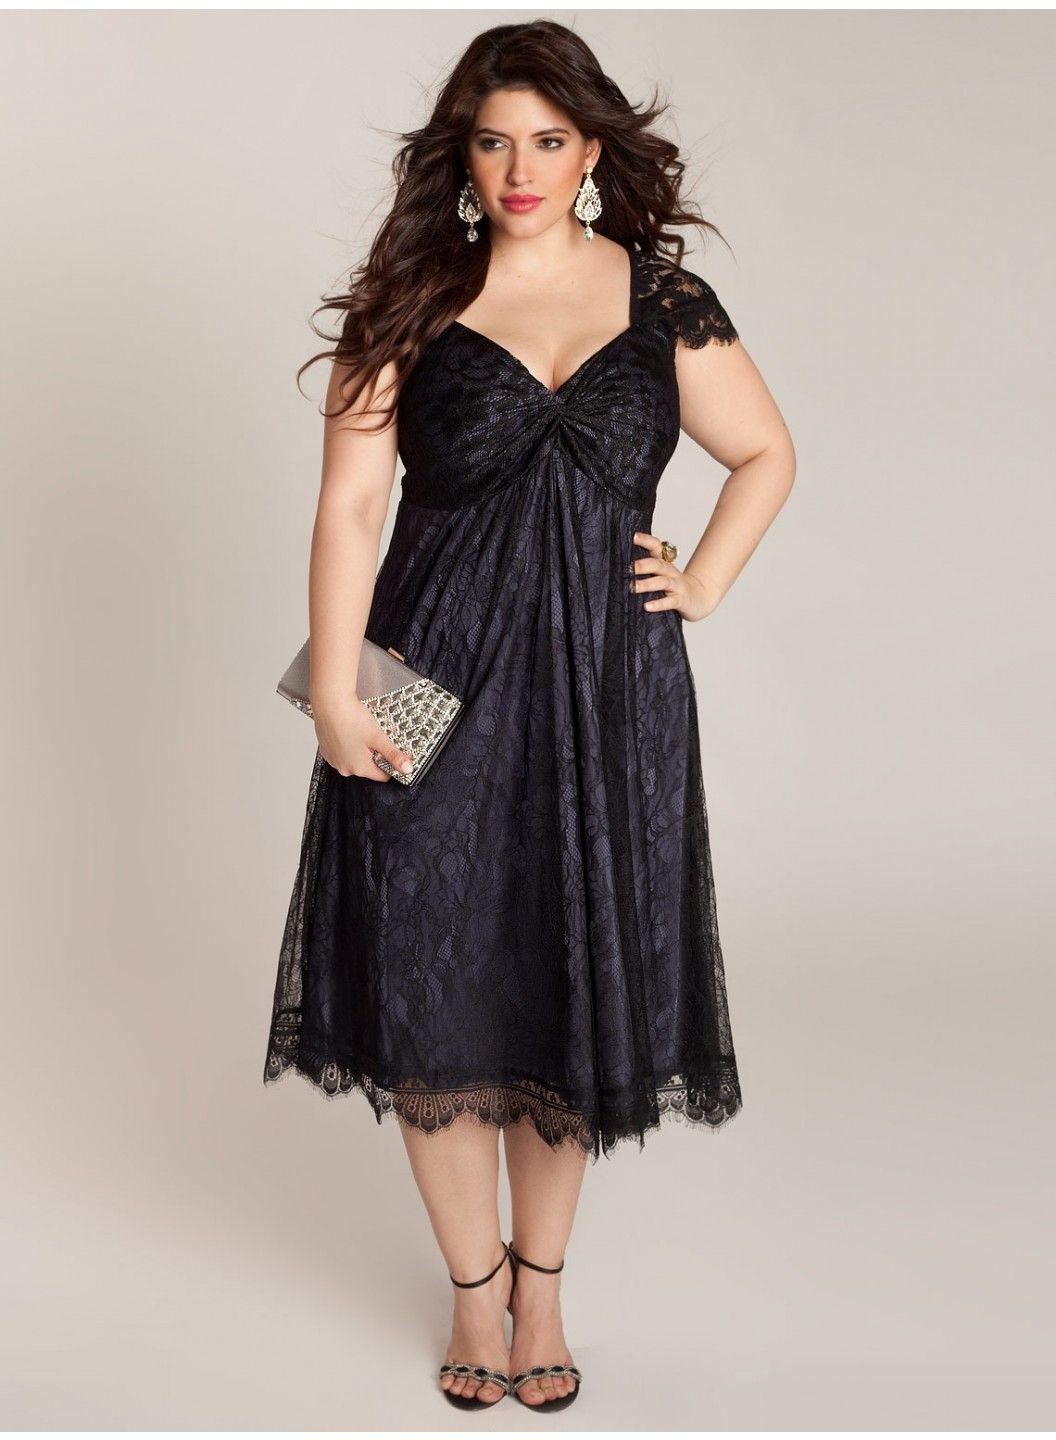 20 Plus Size Evening Dresses to Look Like Queen | Lace dress ...